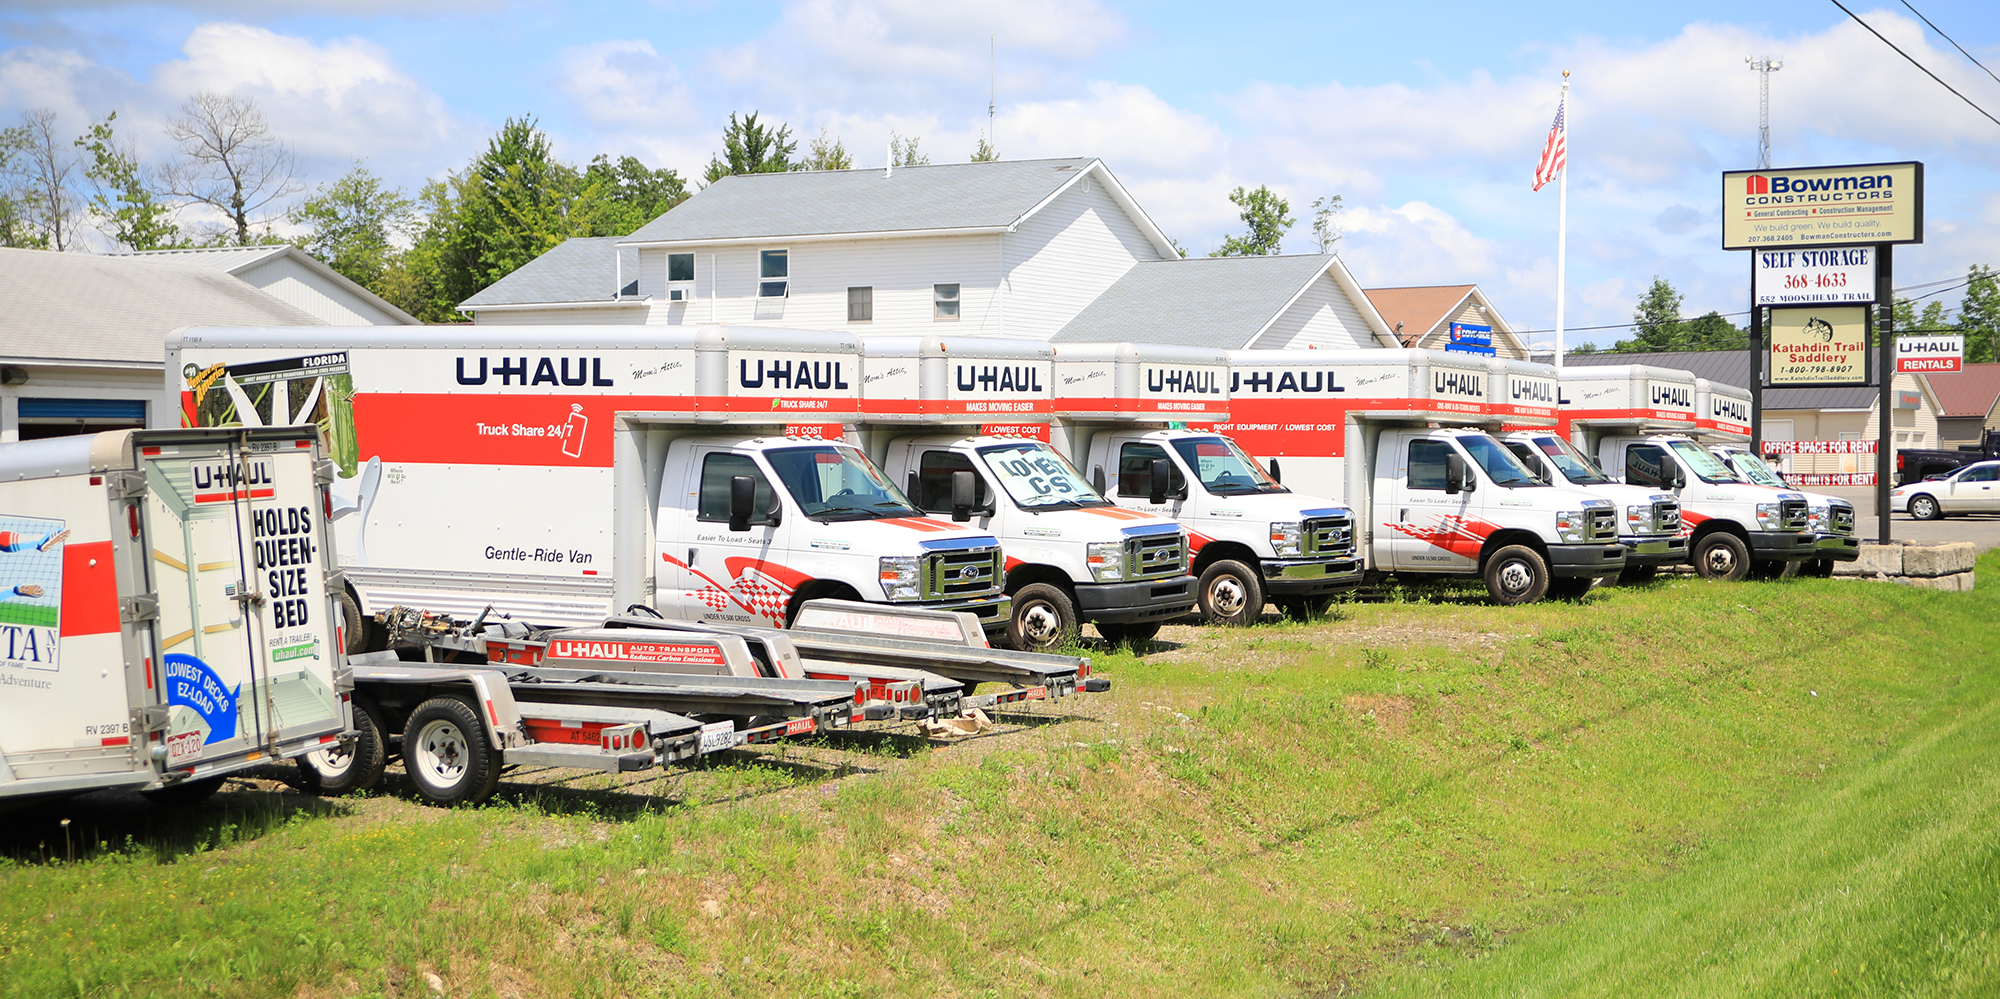 photo of uhaul fleet of trucks at bowman constructors